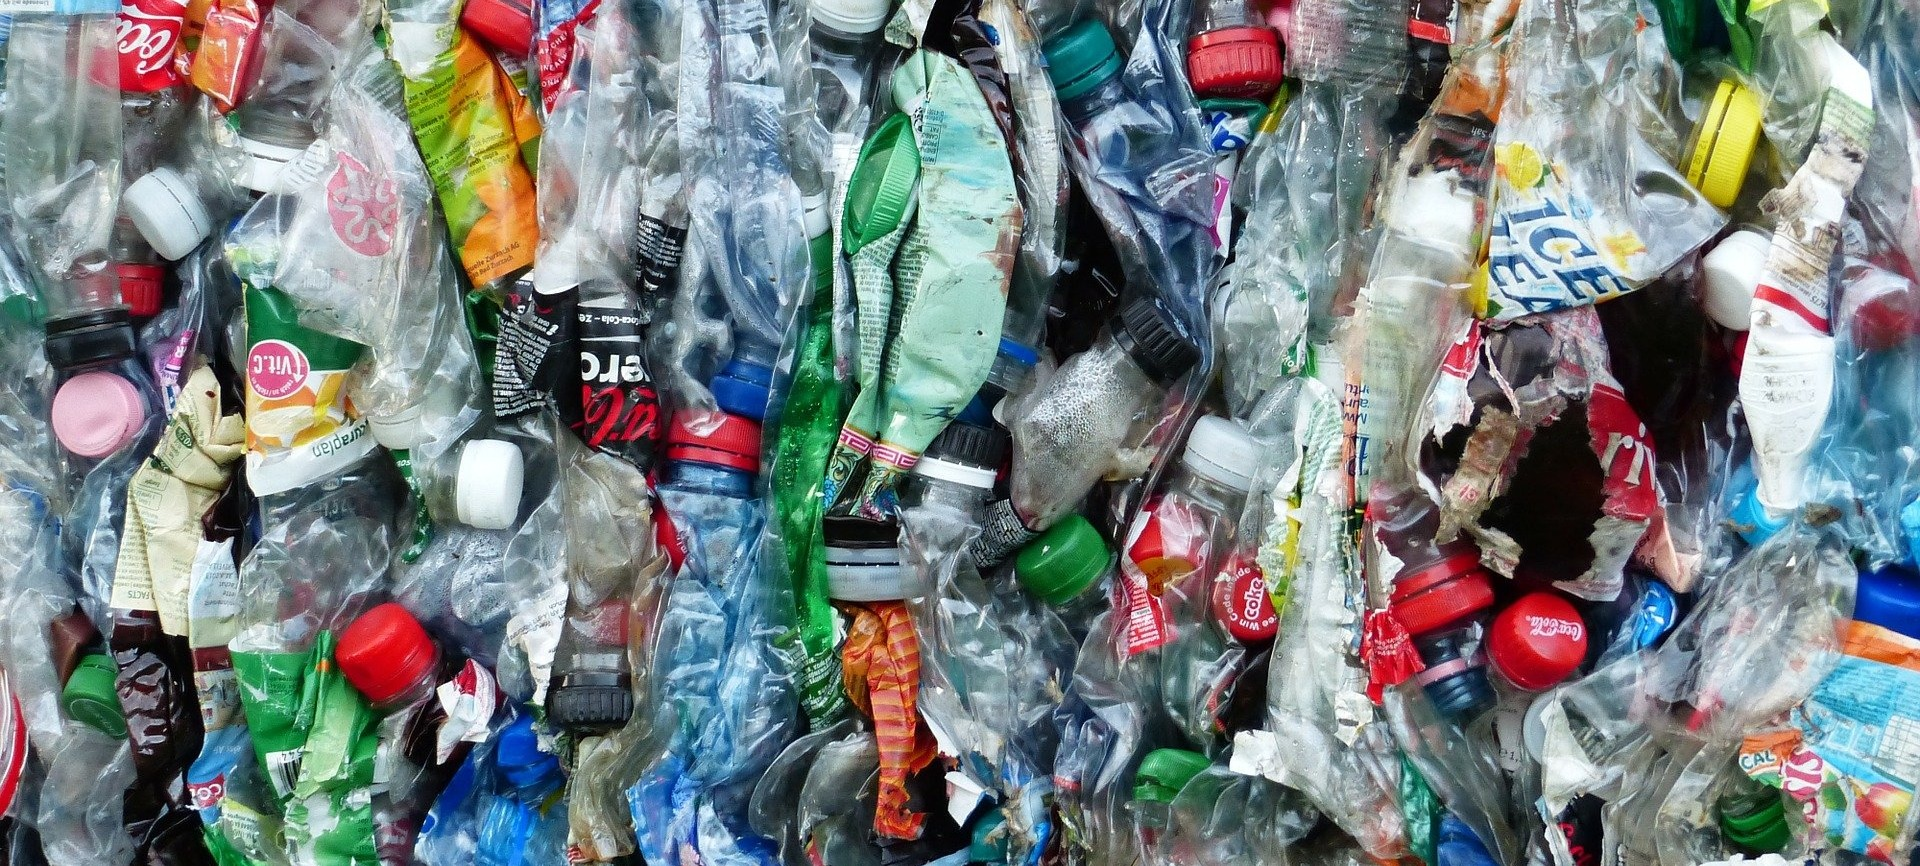 used plastic bottles in a pile